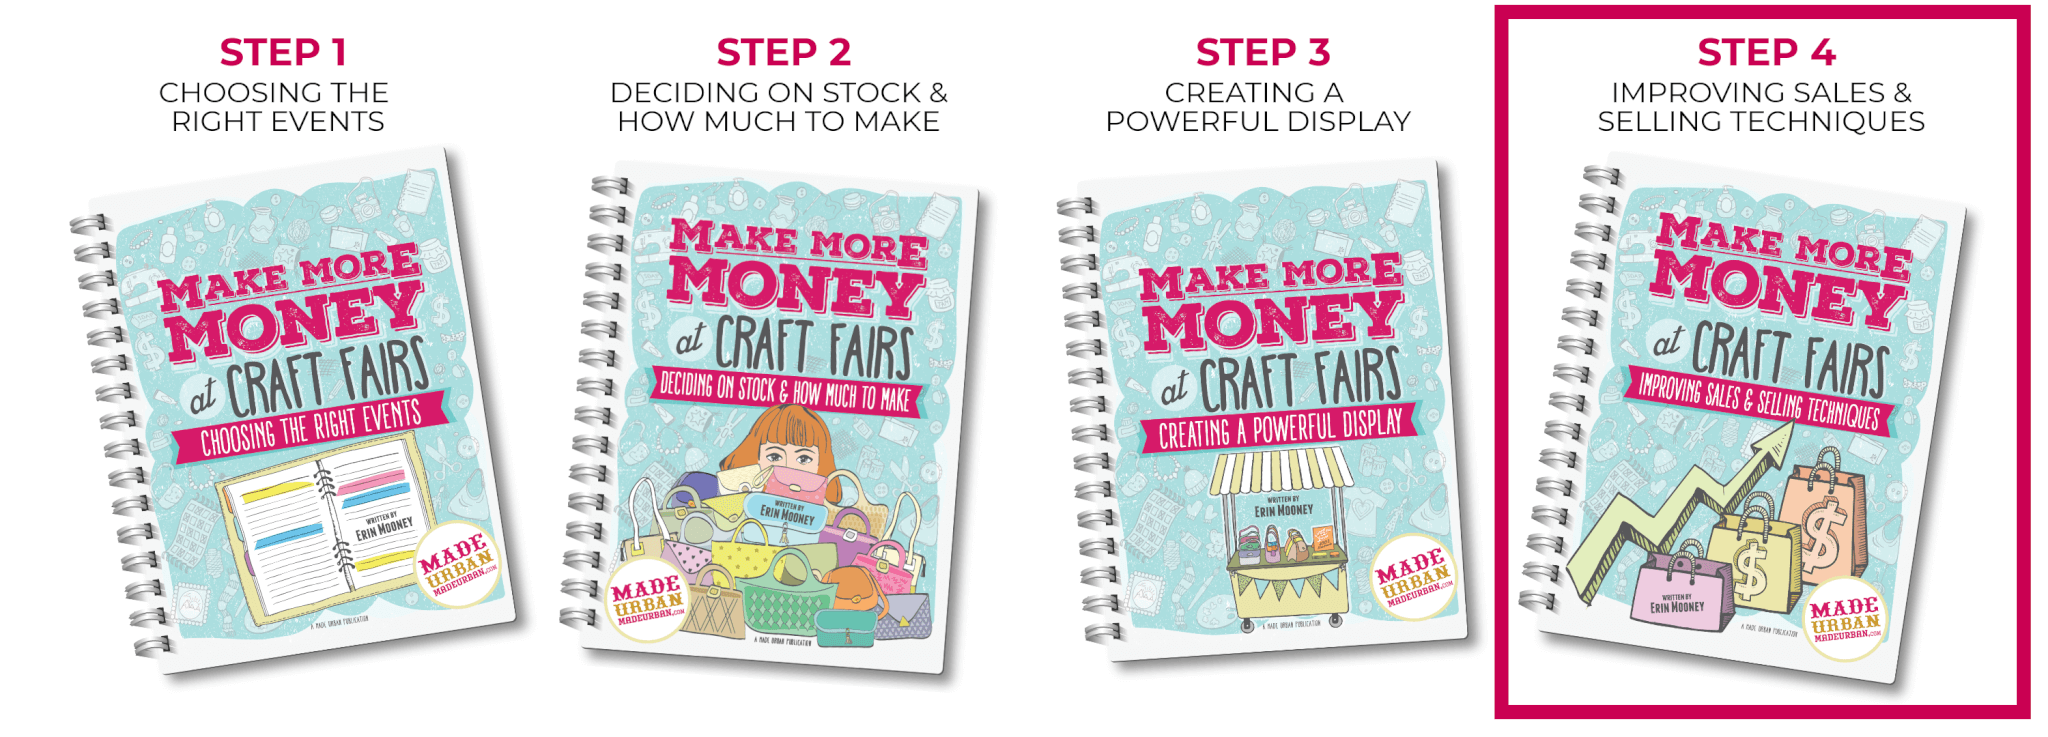 Make More Money at Craft Fairs - all ebooks